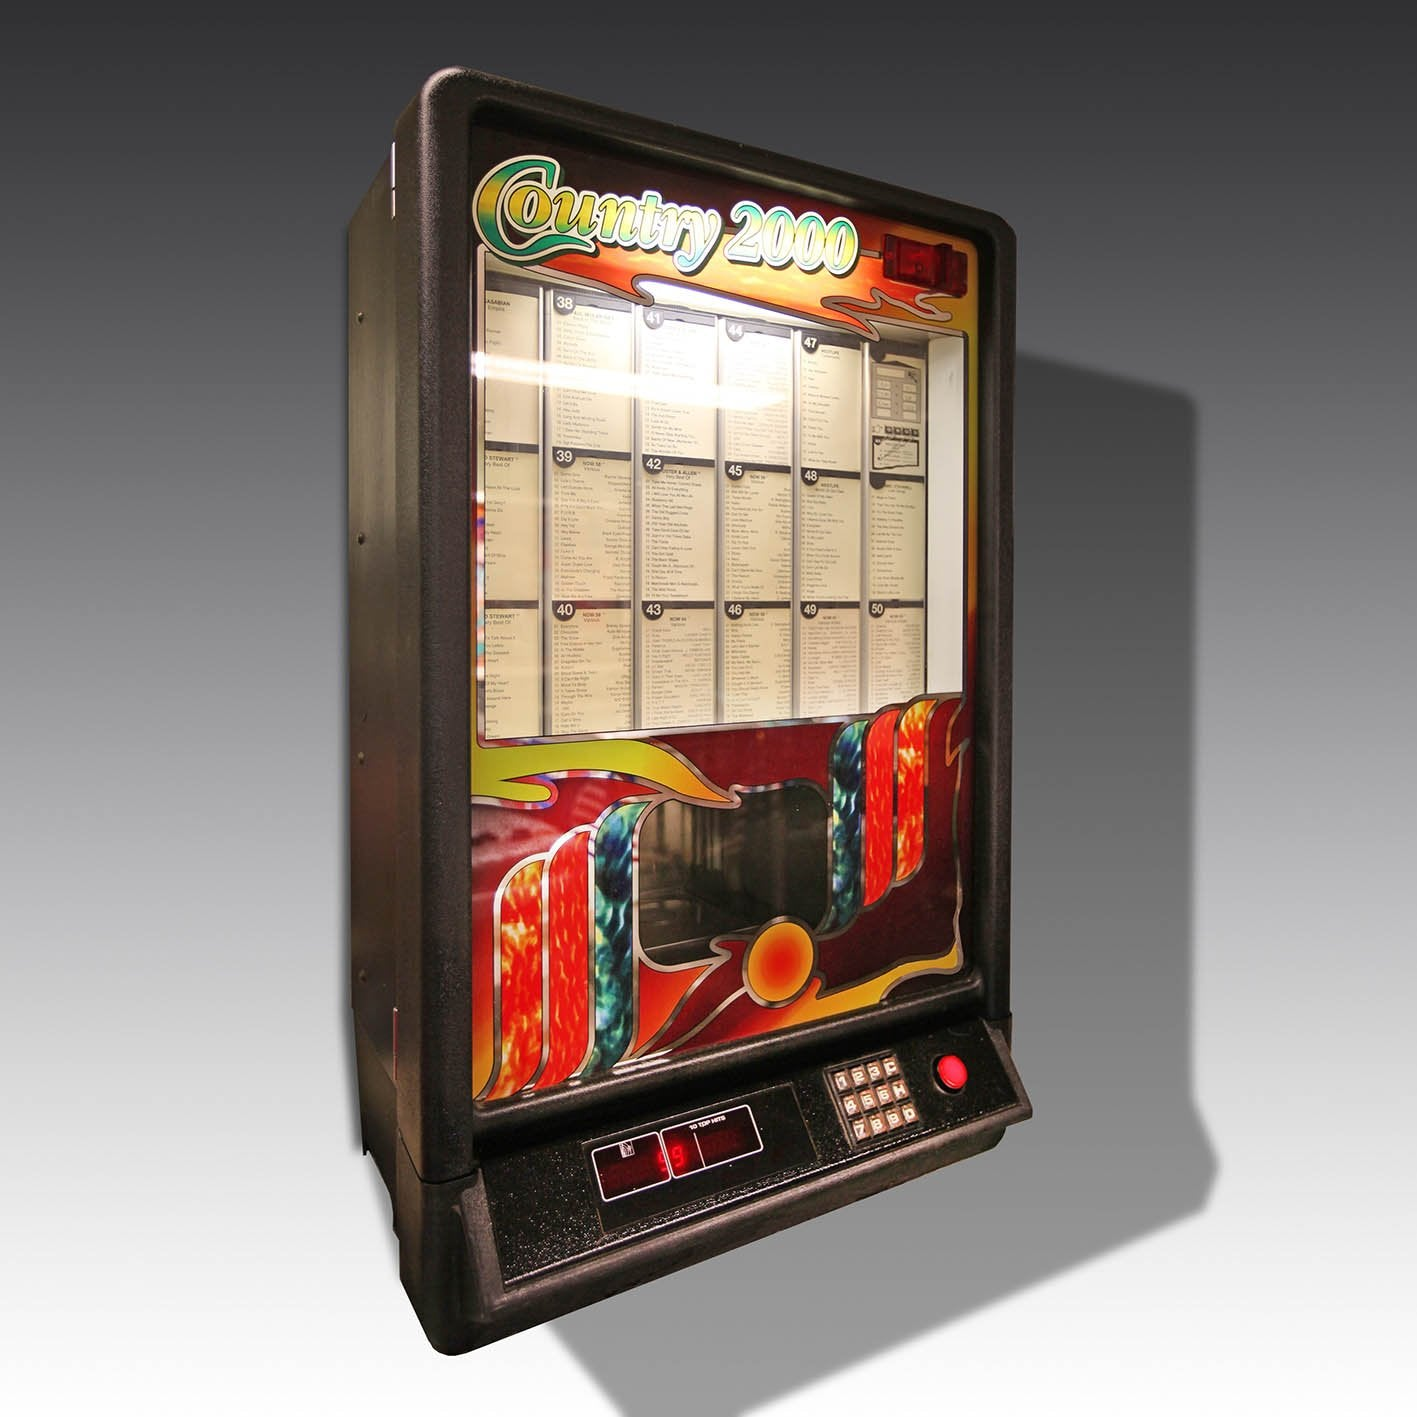 NSM Country 2000 CD Jukebox